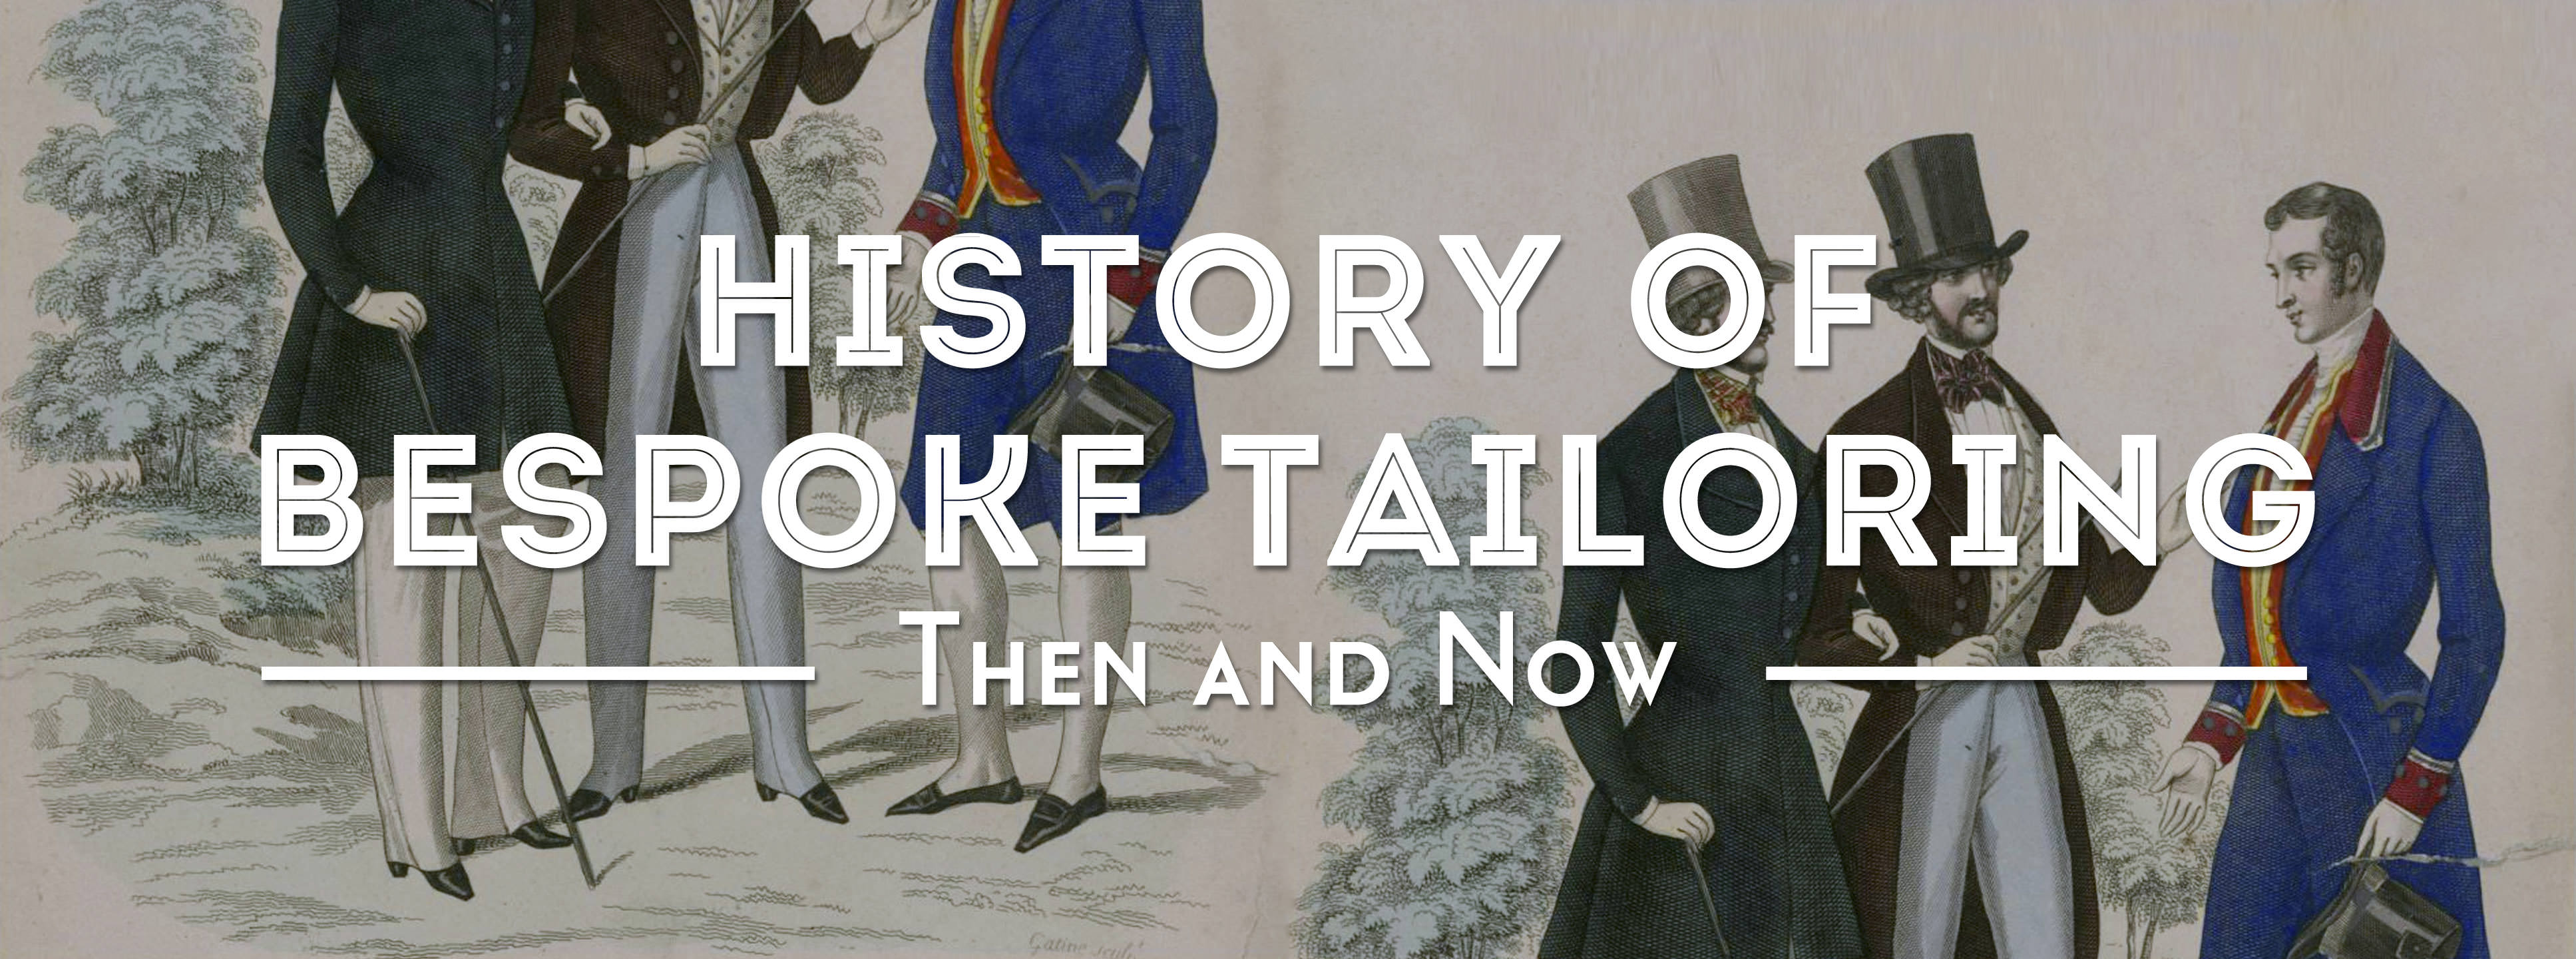 The History Of Bespoke Tailoring Now And Then Gentleman S Gazette